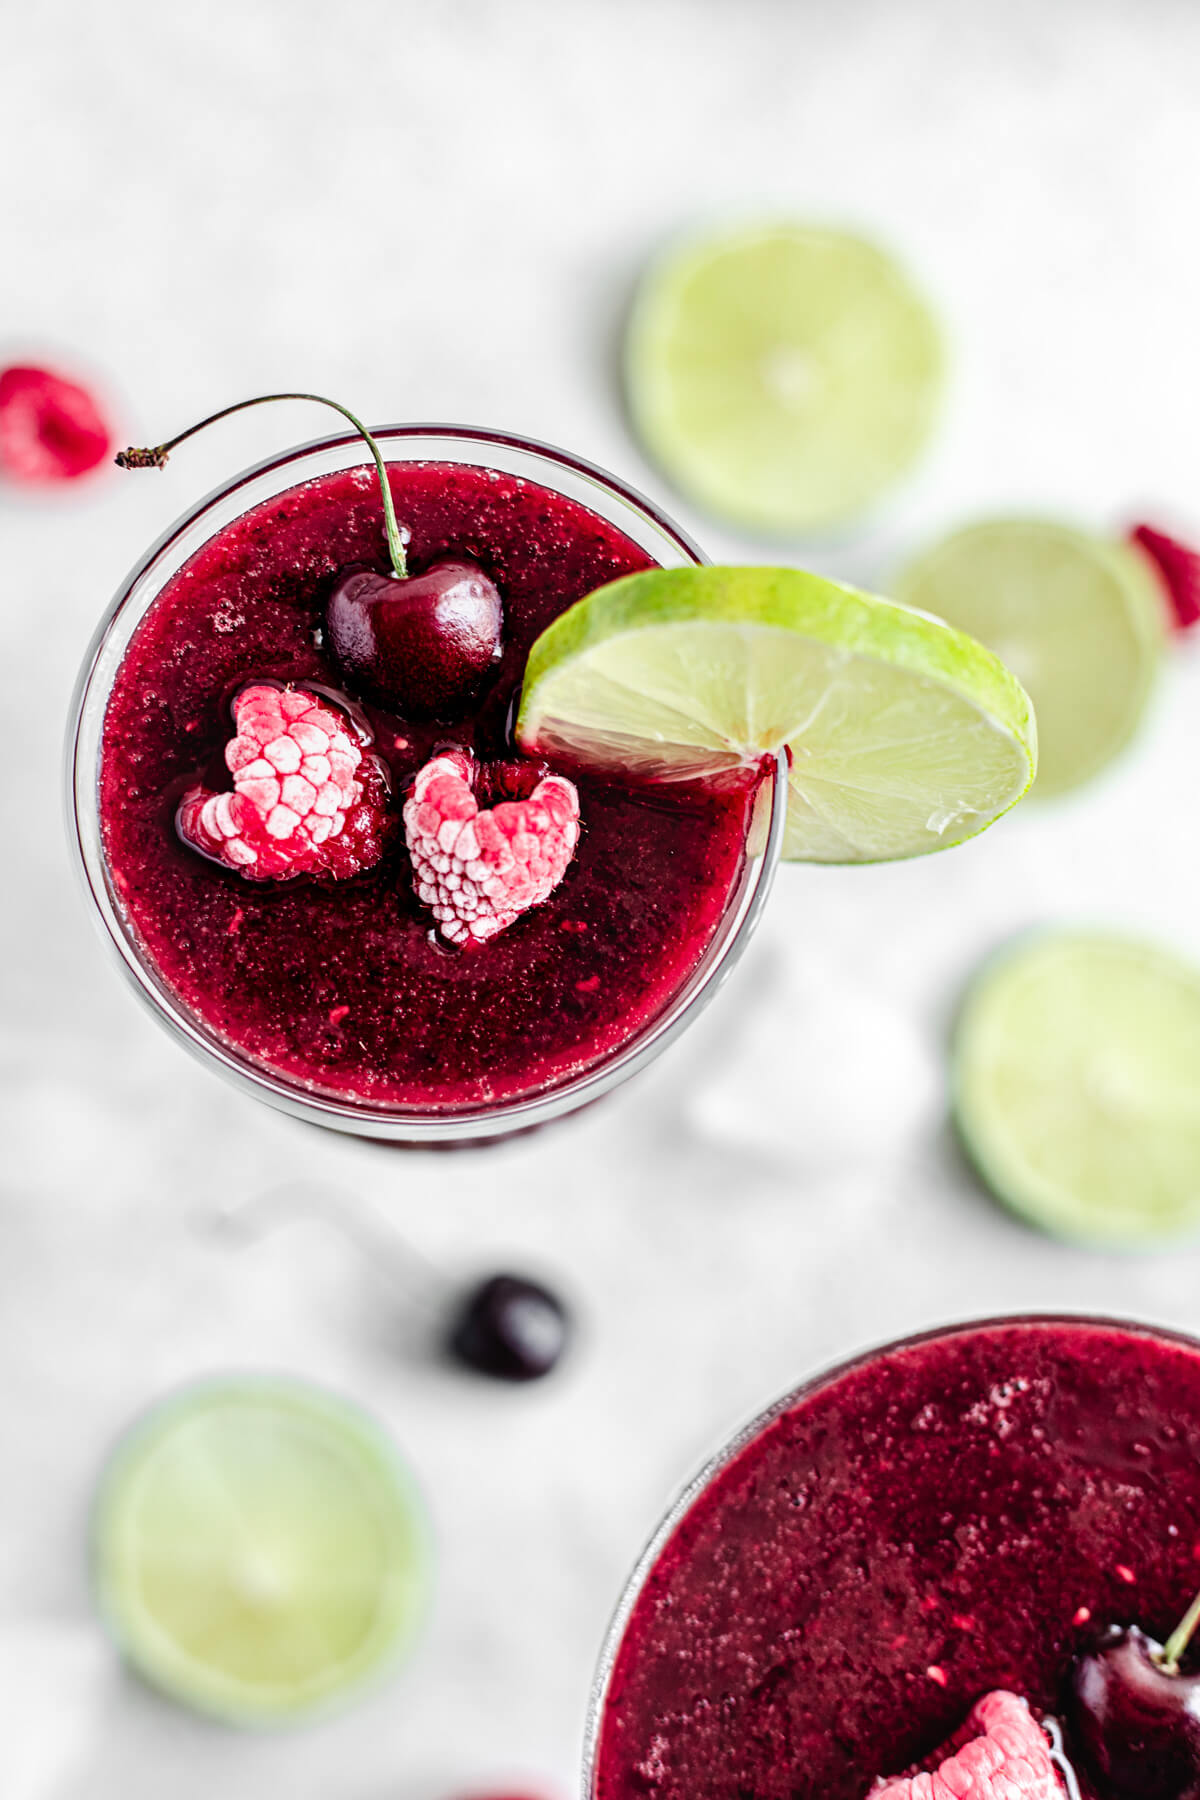 top view showing daiquiri inside of glass topped with two frozen raspberries, a cherry and a lime slice